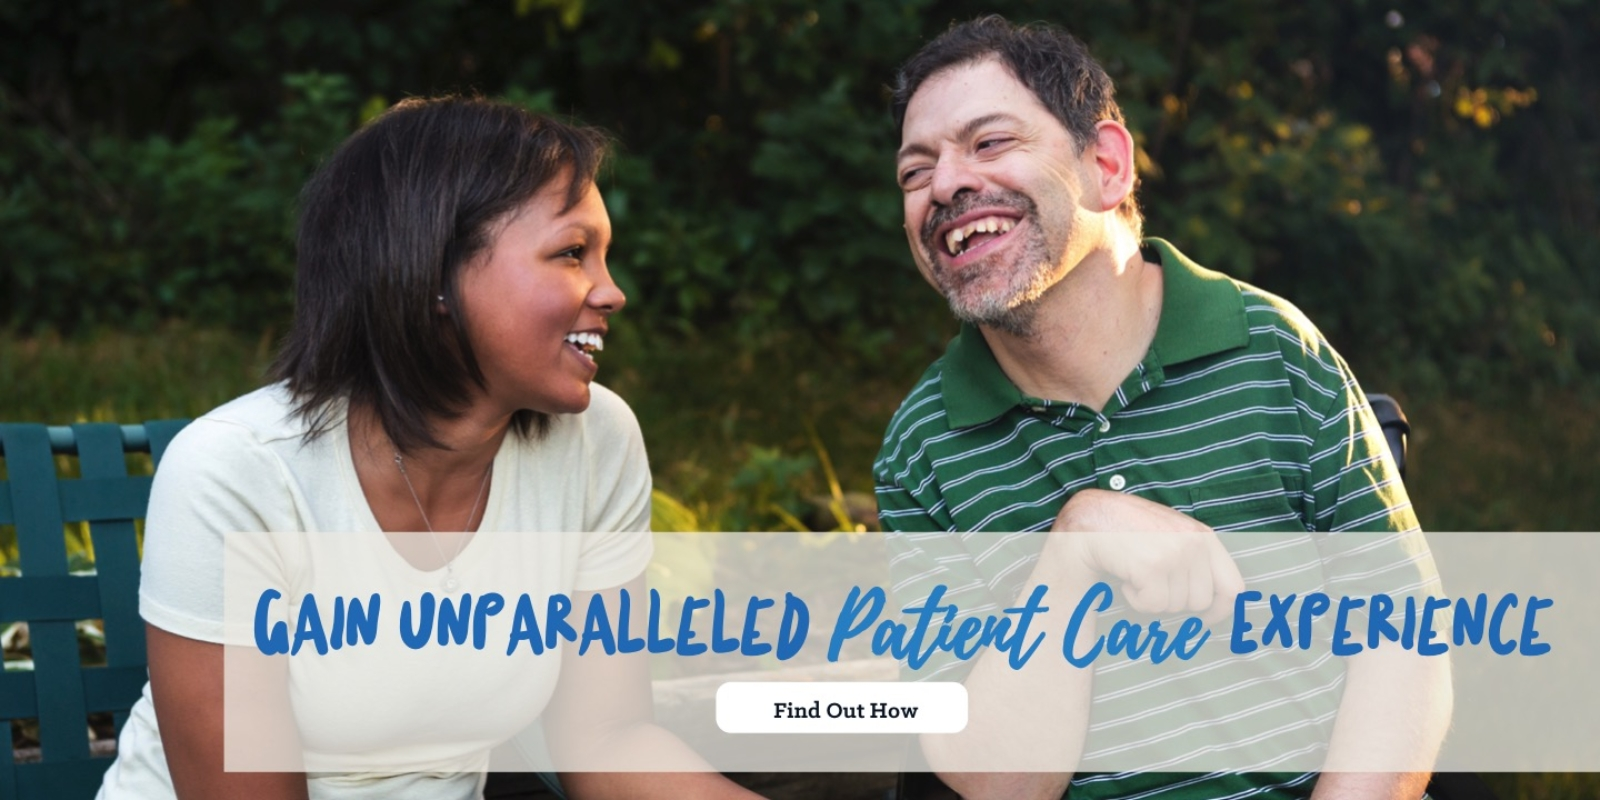 Gain unparalleled patient care experience